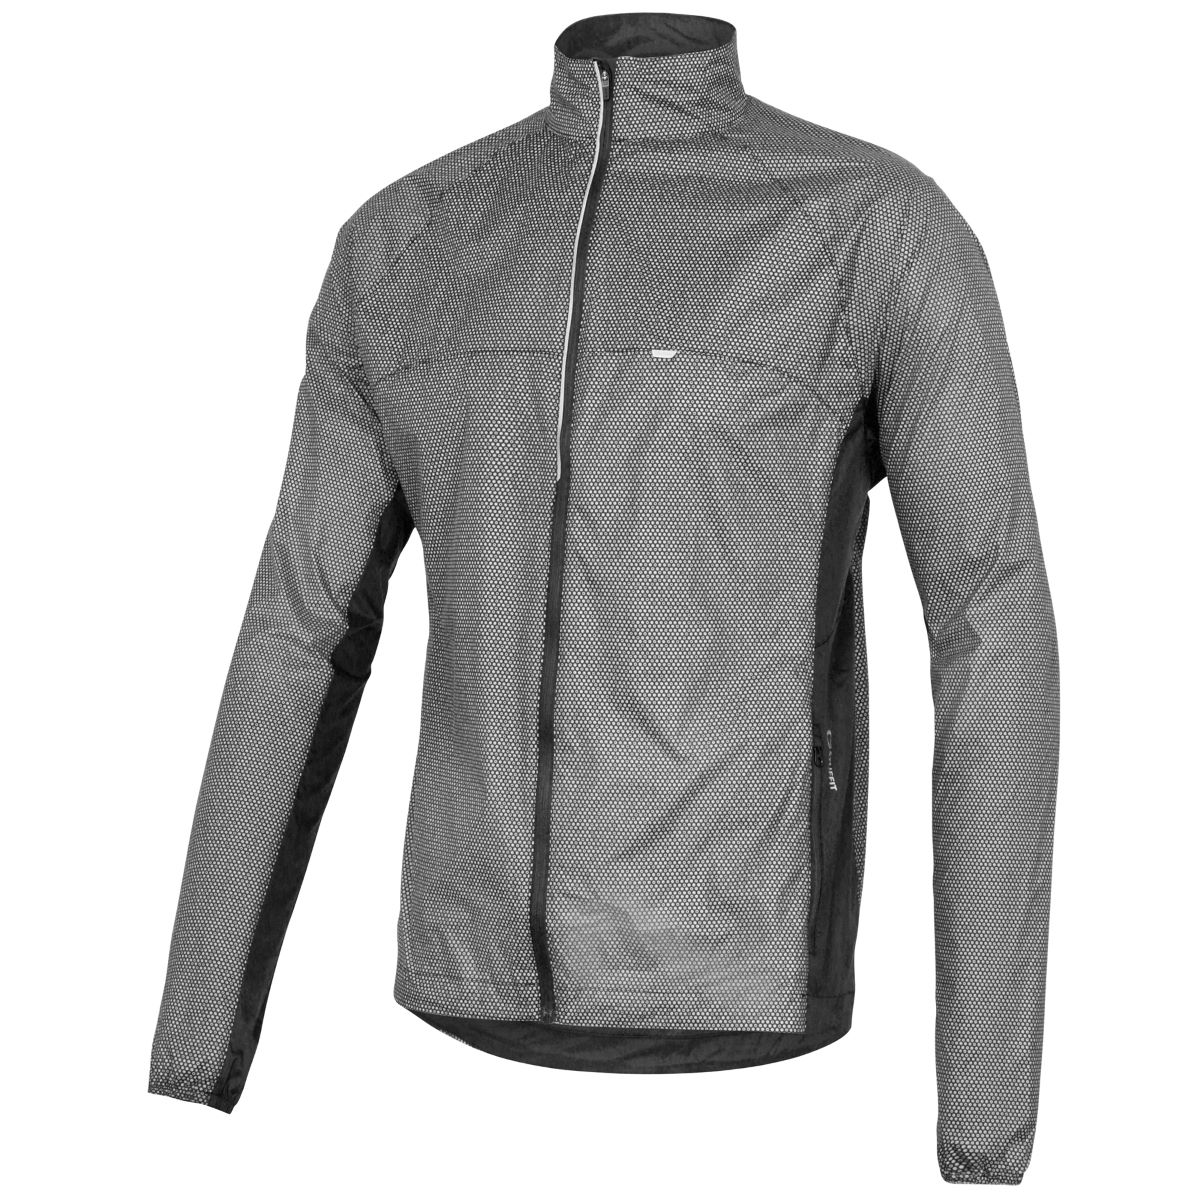 Dhb Reflective Run Jacket Running Windproof Gay Times Uk